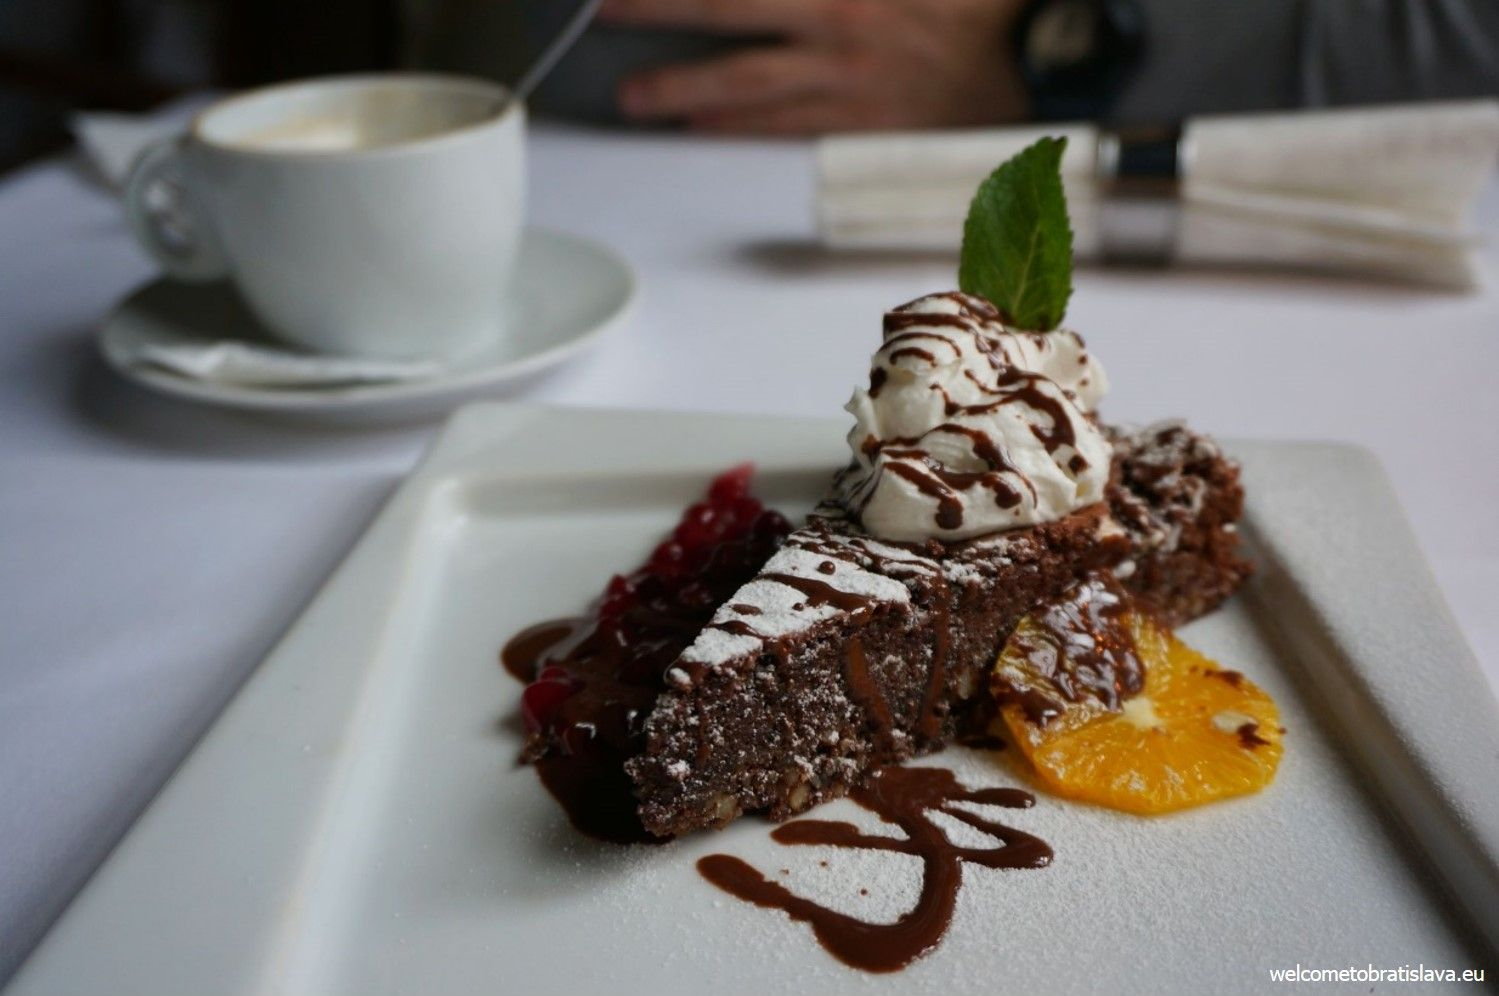 Chocolate & almond cake served with fruit and whipped cream